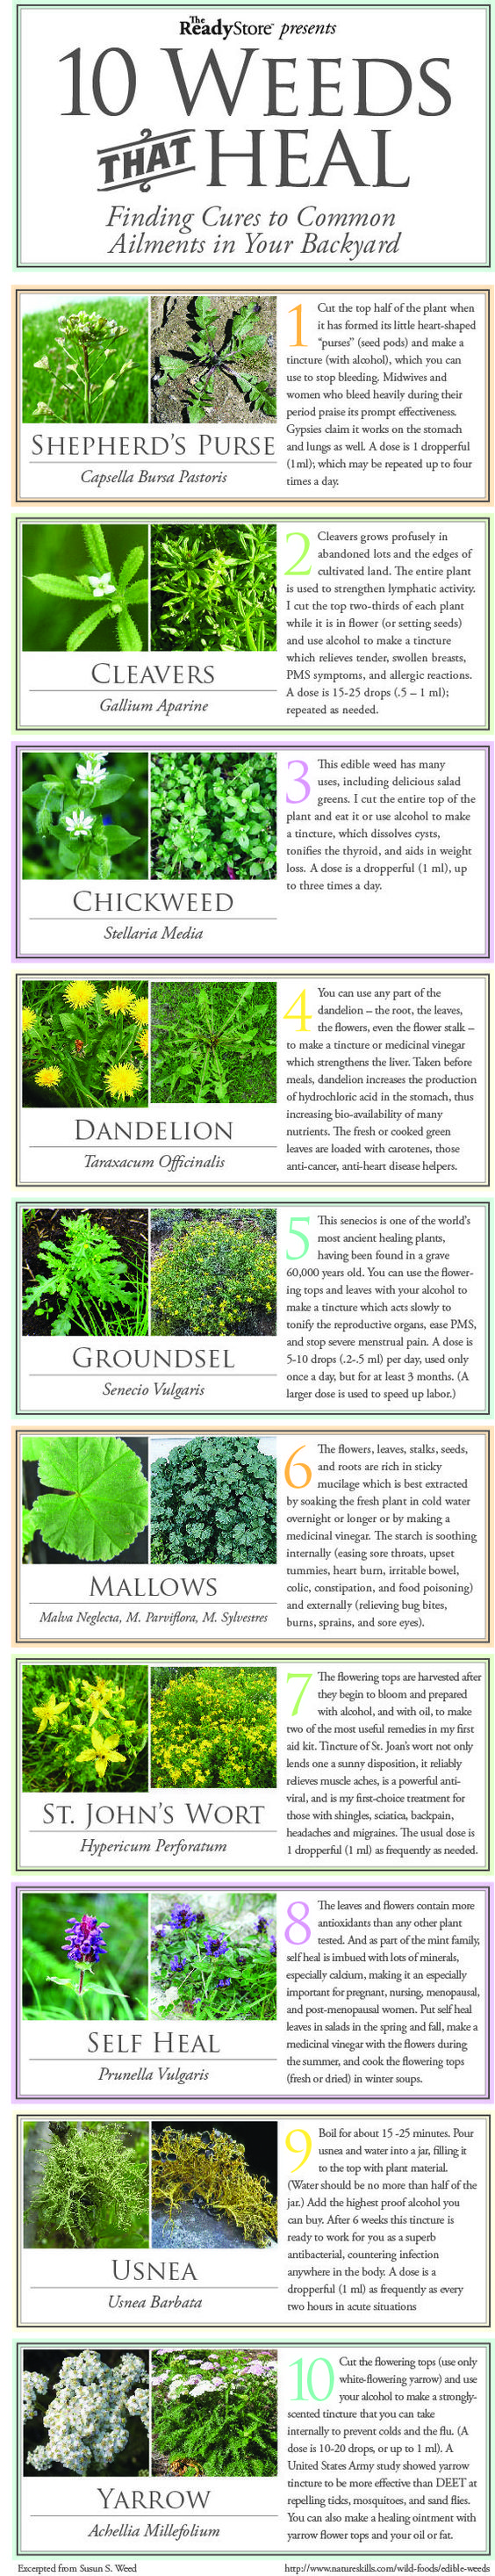 10 Weeds That Heal - A Herbal Medicine Chest in Your Backyard... | http://www.ecosnippets.com/gardening/10-weeds-that-heal-a-herbal-medicine-chest-in-your-backyard/